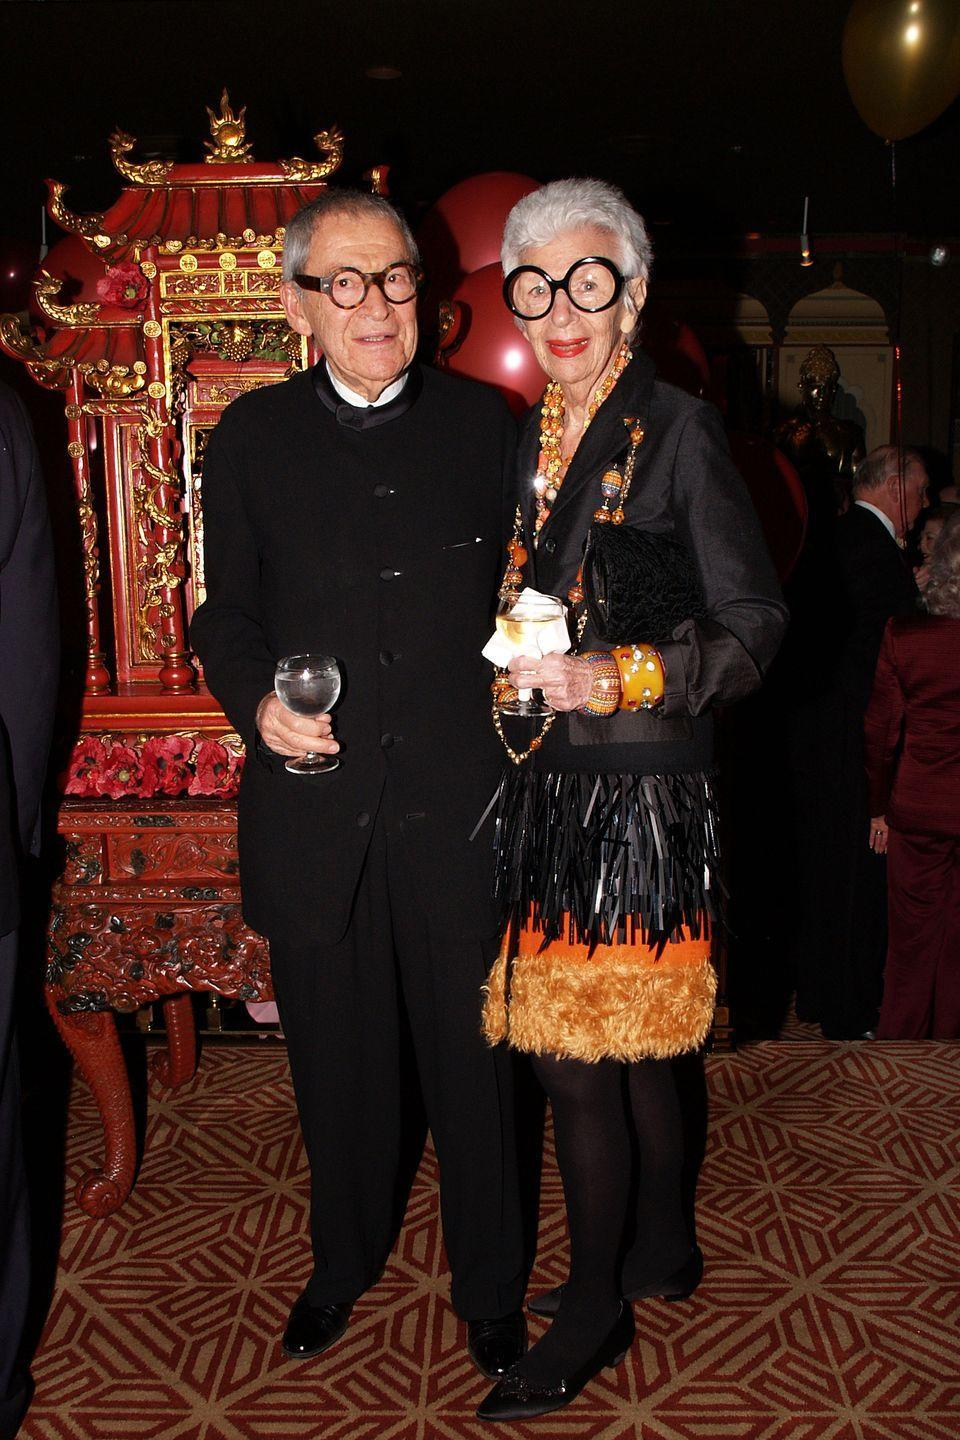 <p>Carl and Iris Apfel attend a birthday party in New York City, with Iris sporting a black fringe skirt with orange fur trim, matching long baubles, and oversized cuffs. <br></p>